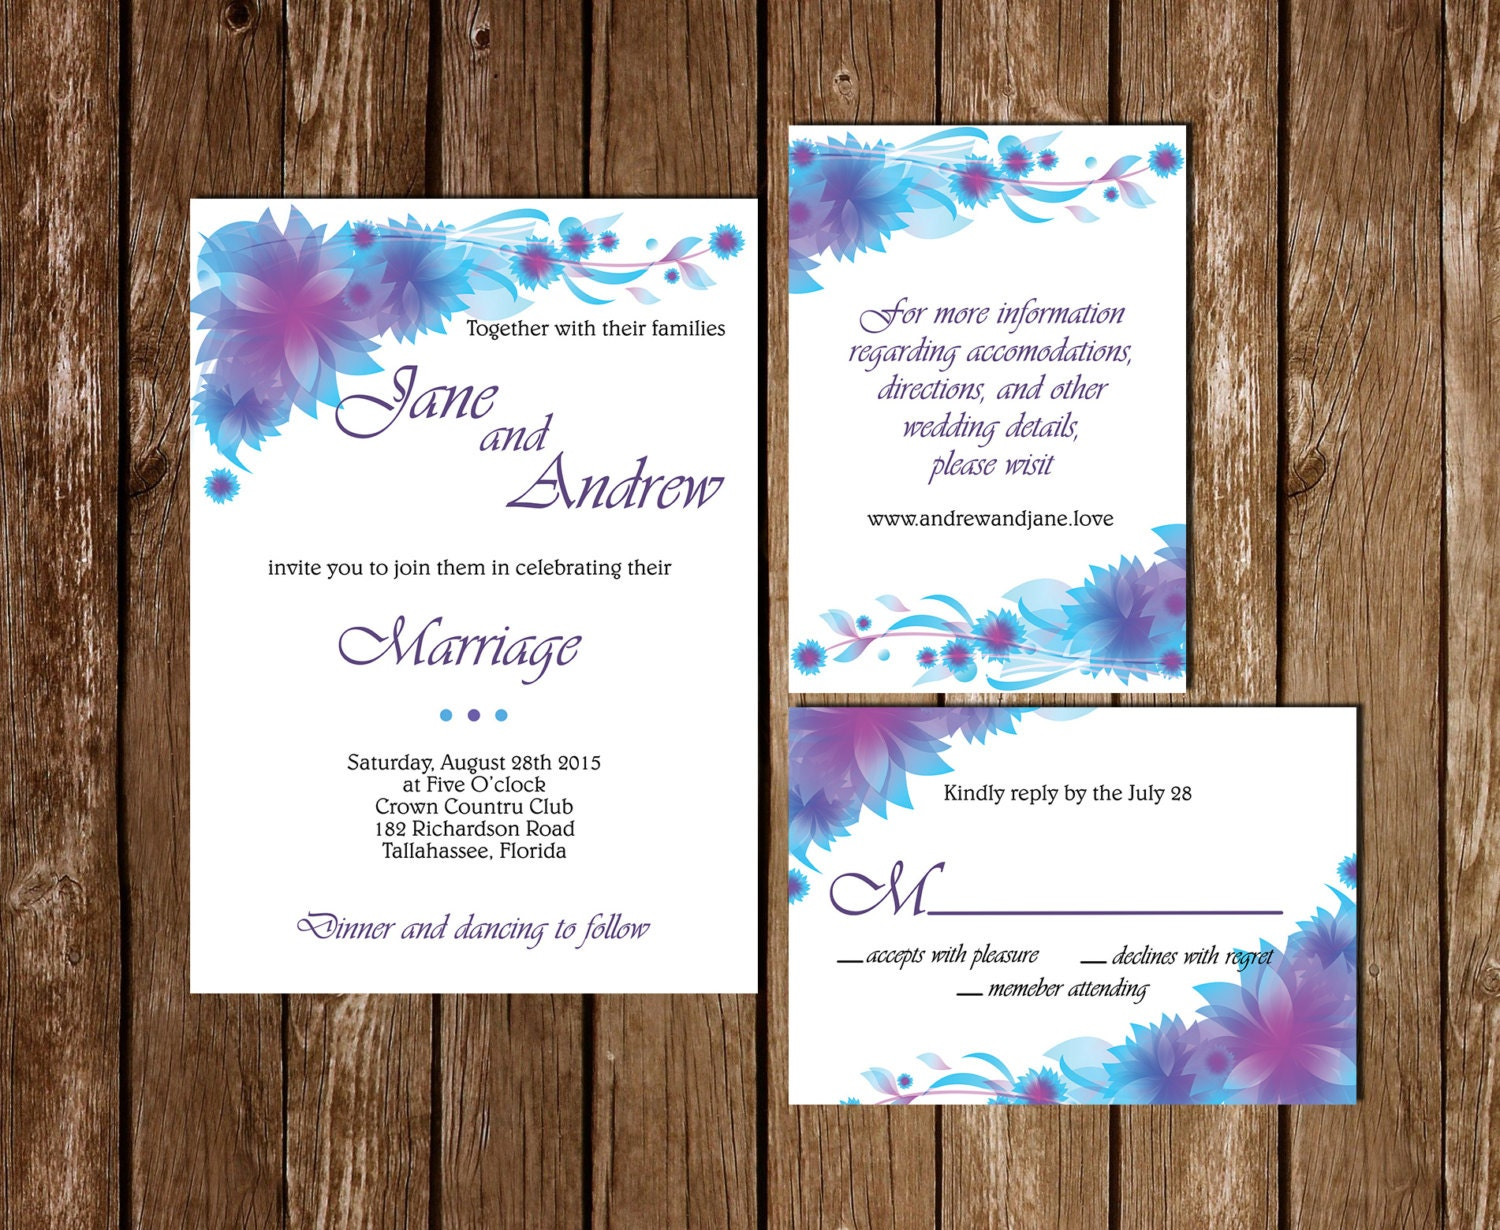 Printable Wedding Invitation RSVP Information Card